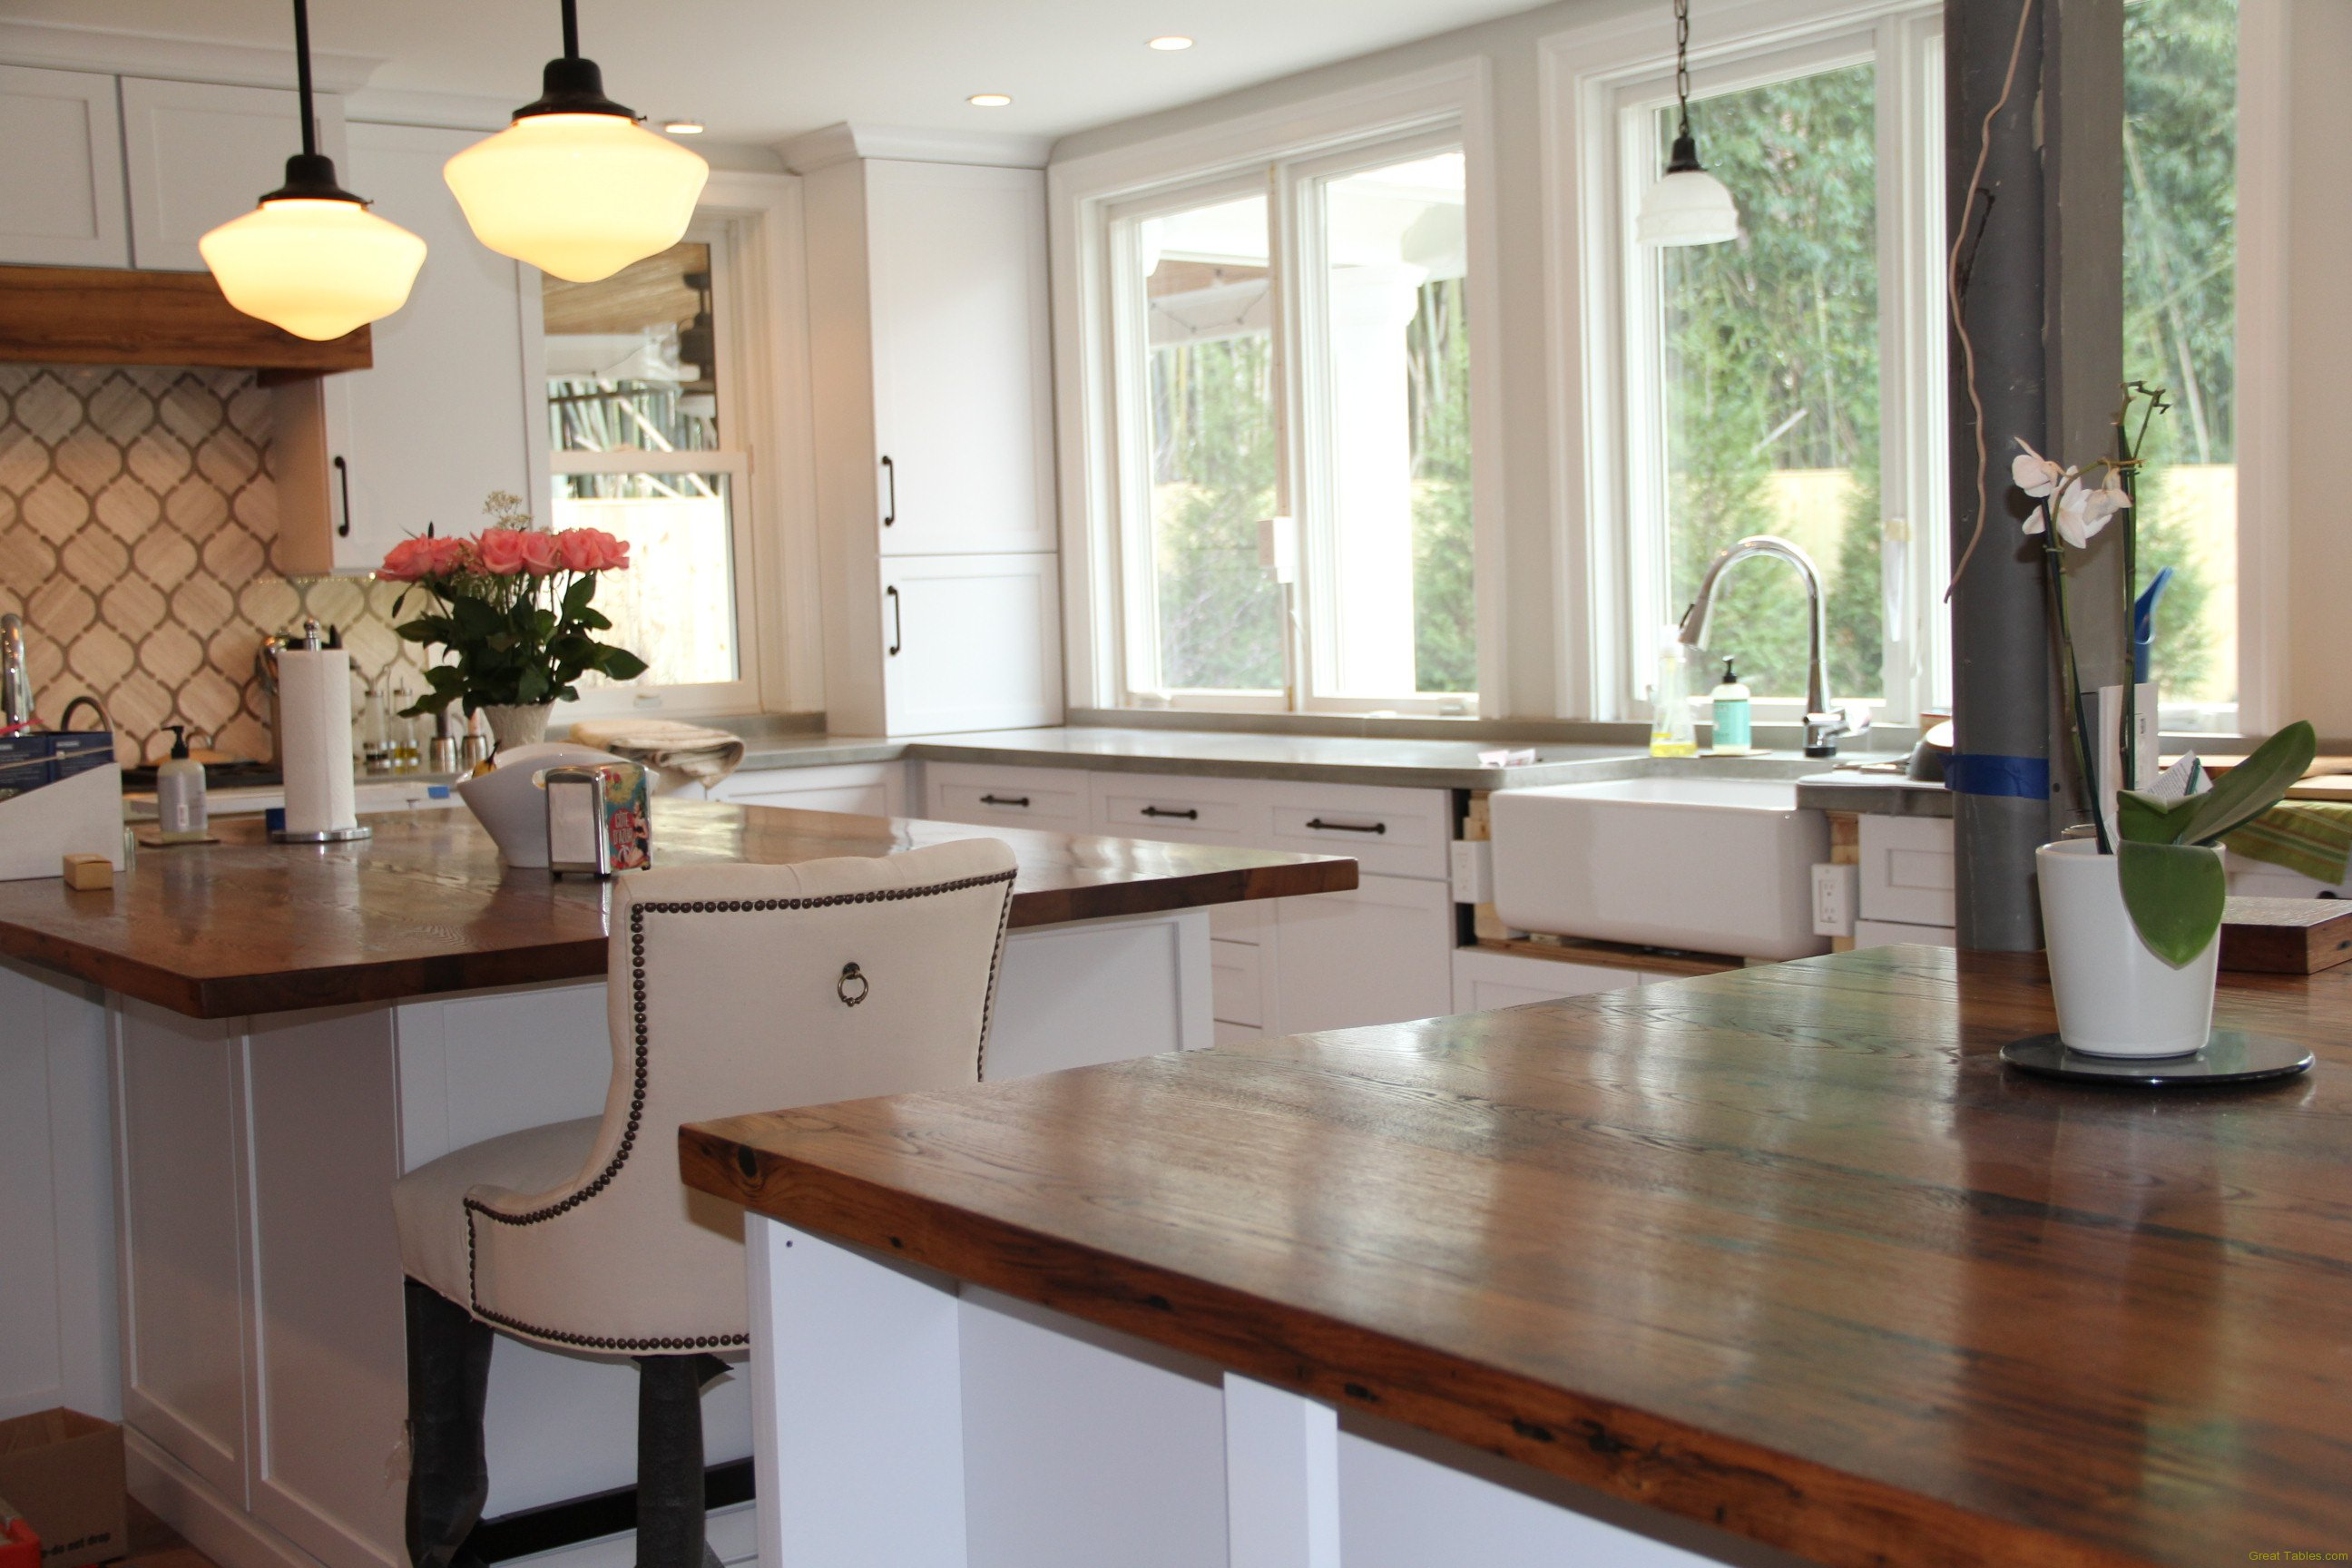 Reclaimed Wood Tops and Features - Reclaimed Wood Furniture ...